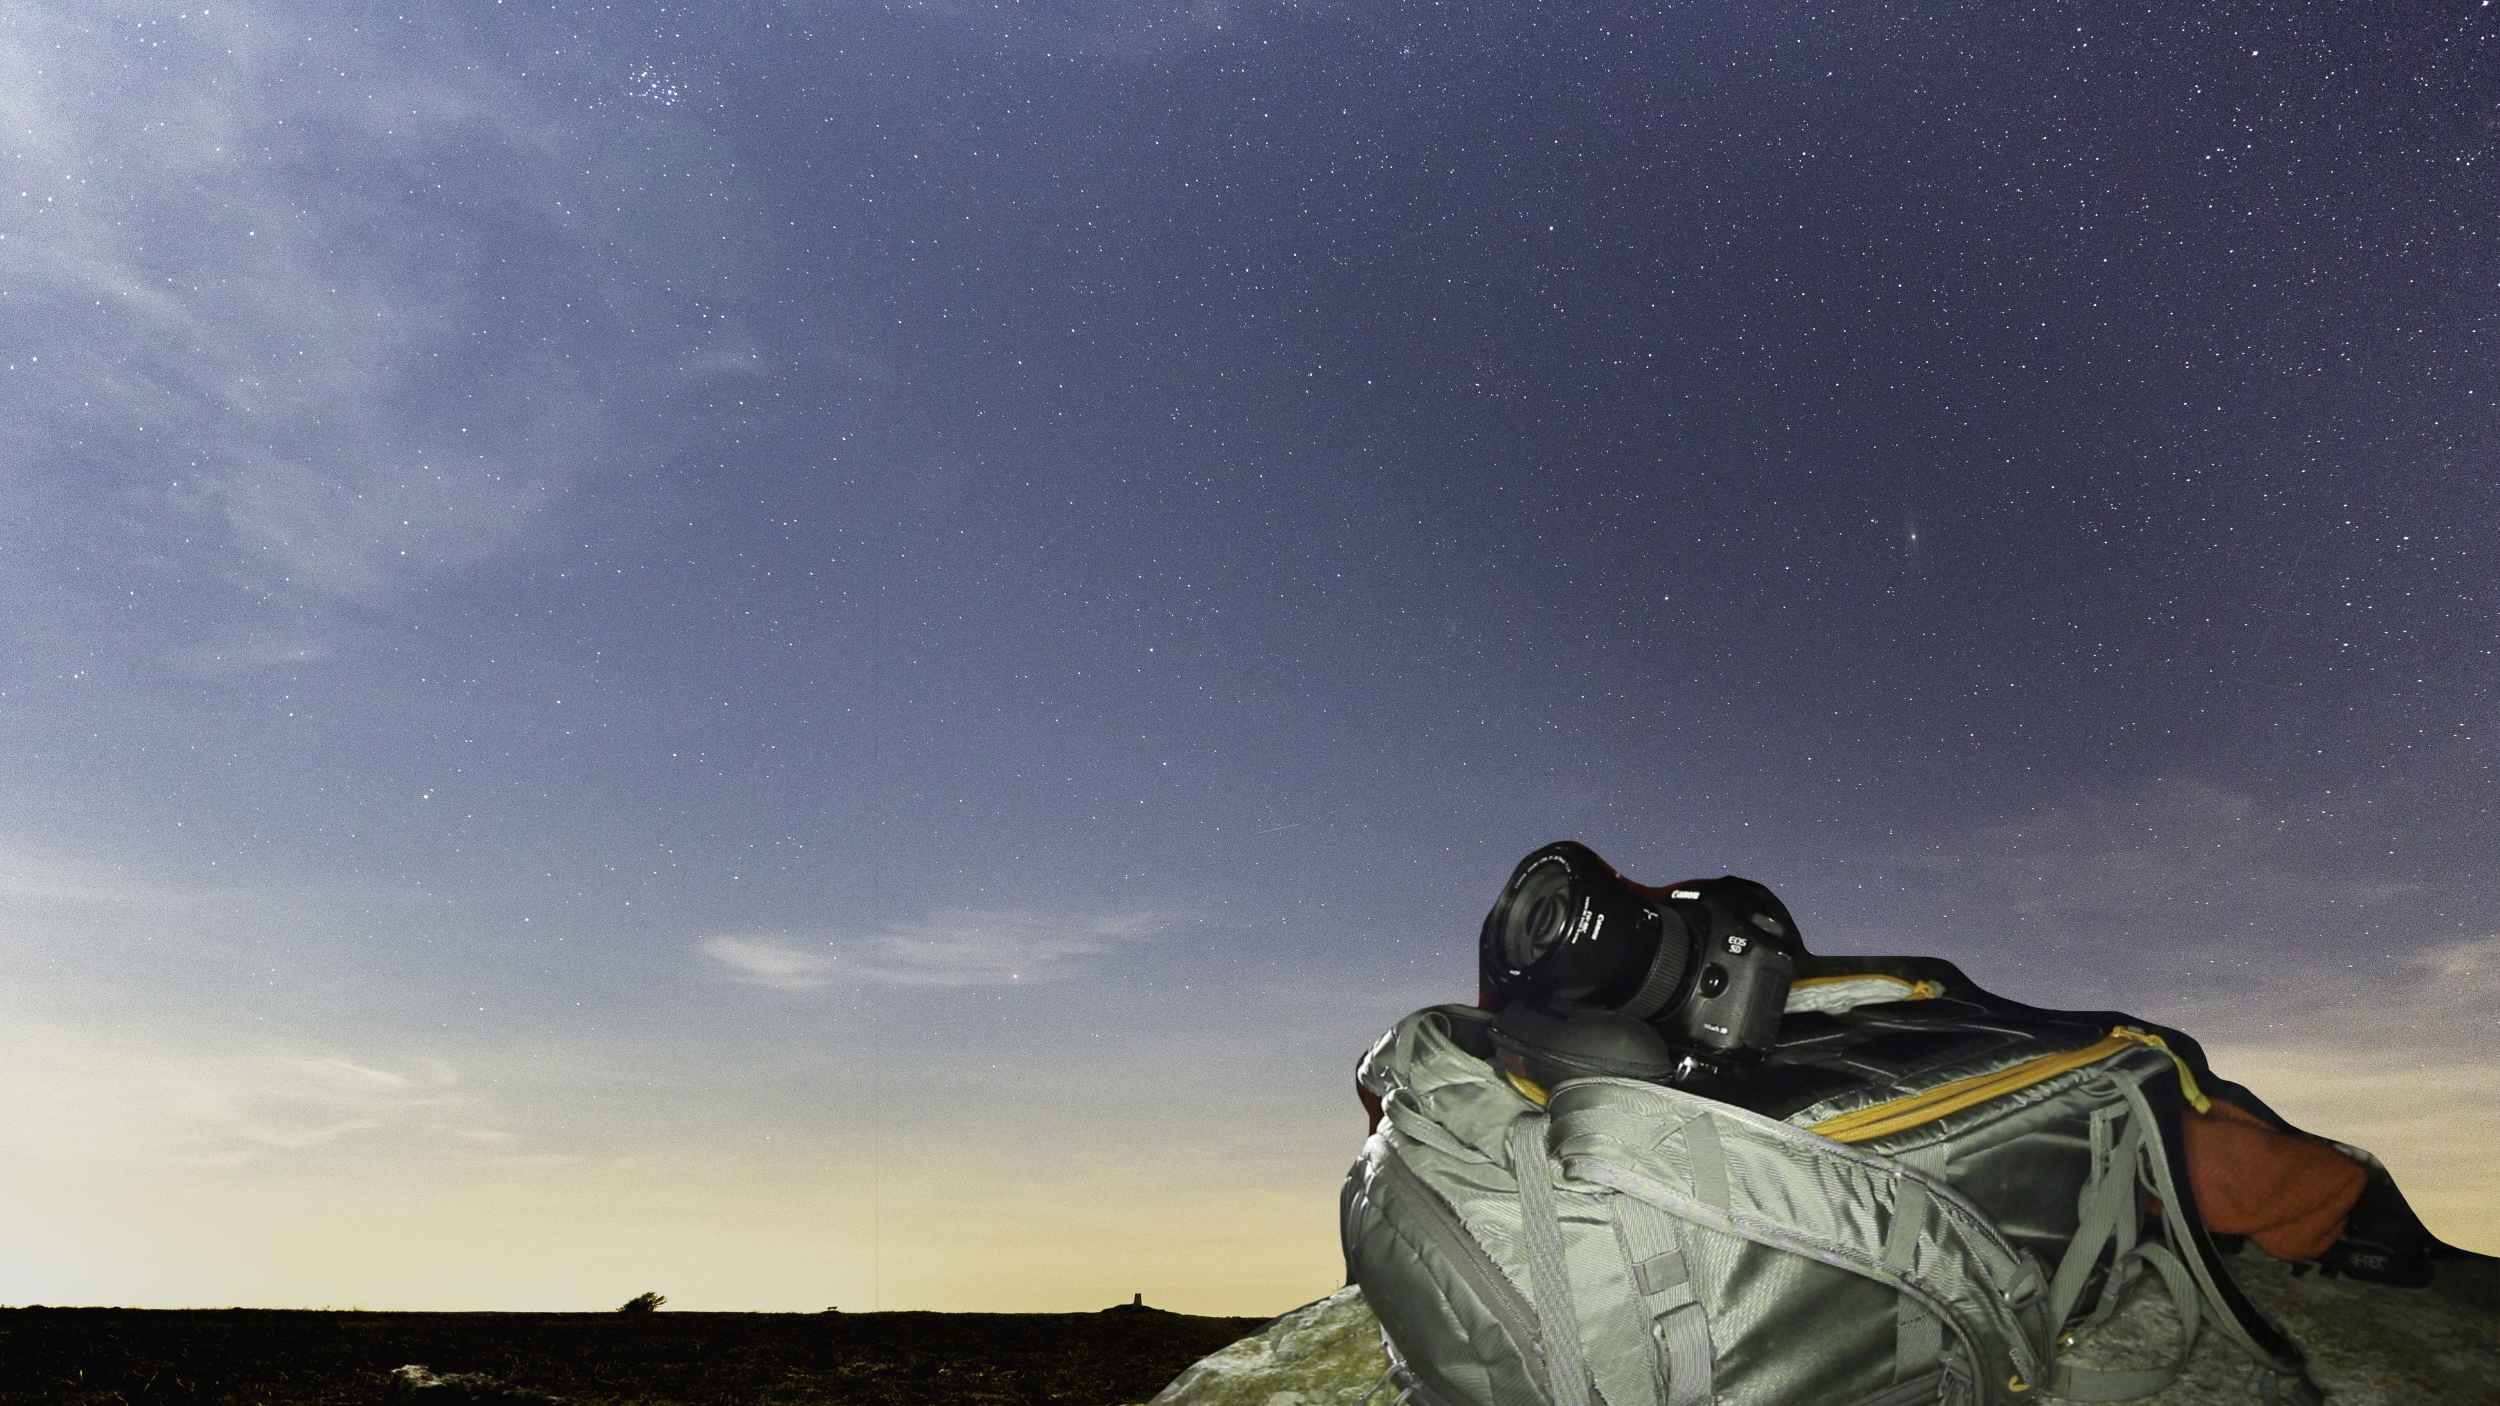 Do you need a tripod for astrophotography